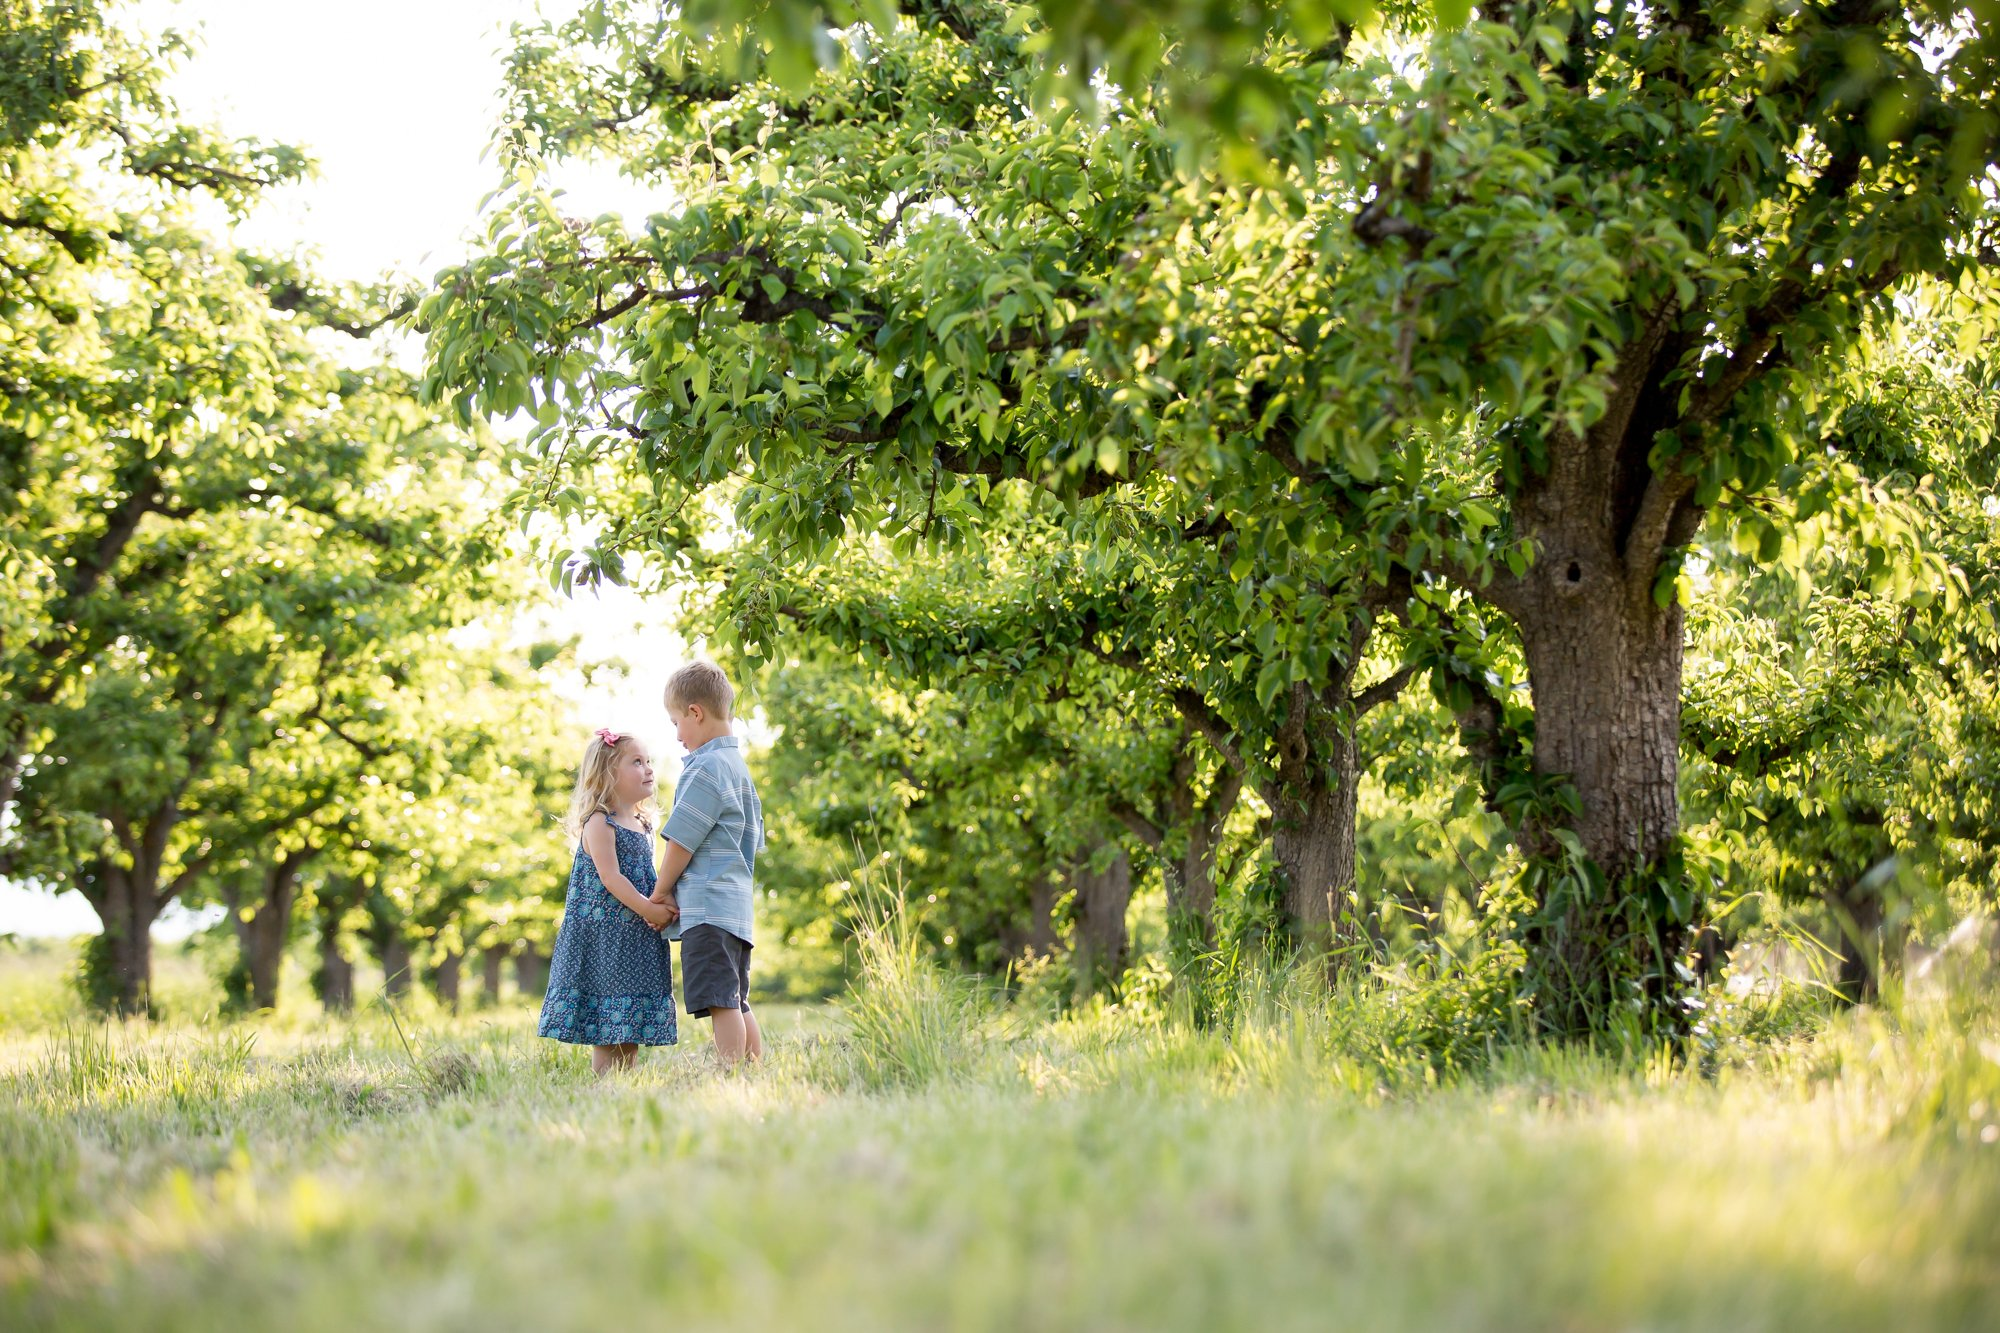 A brother and sister standing in an orchard